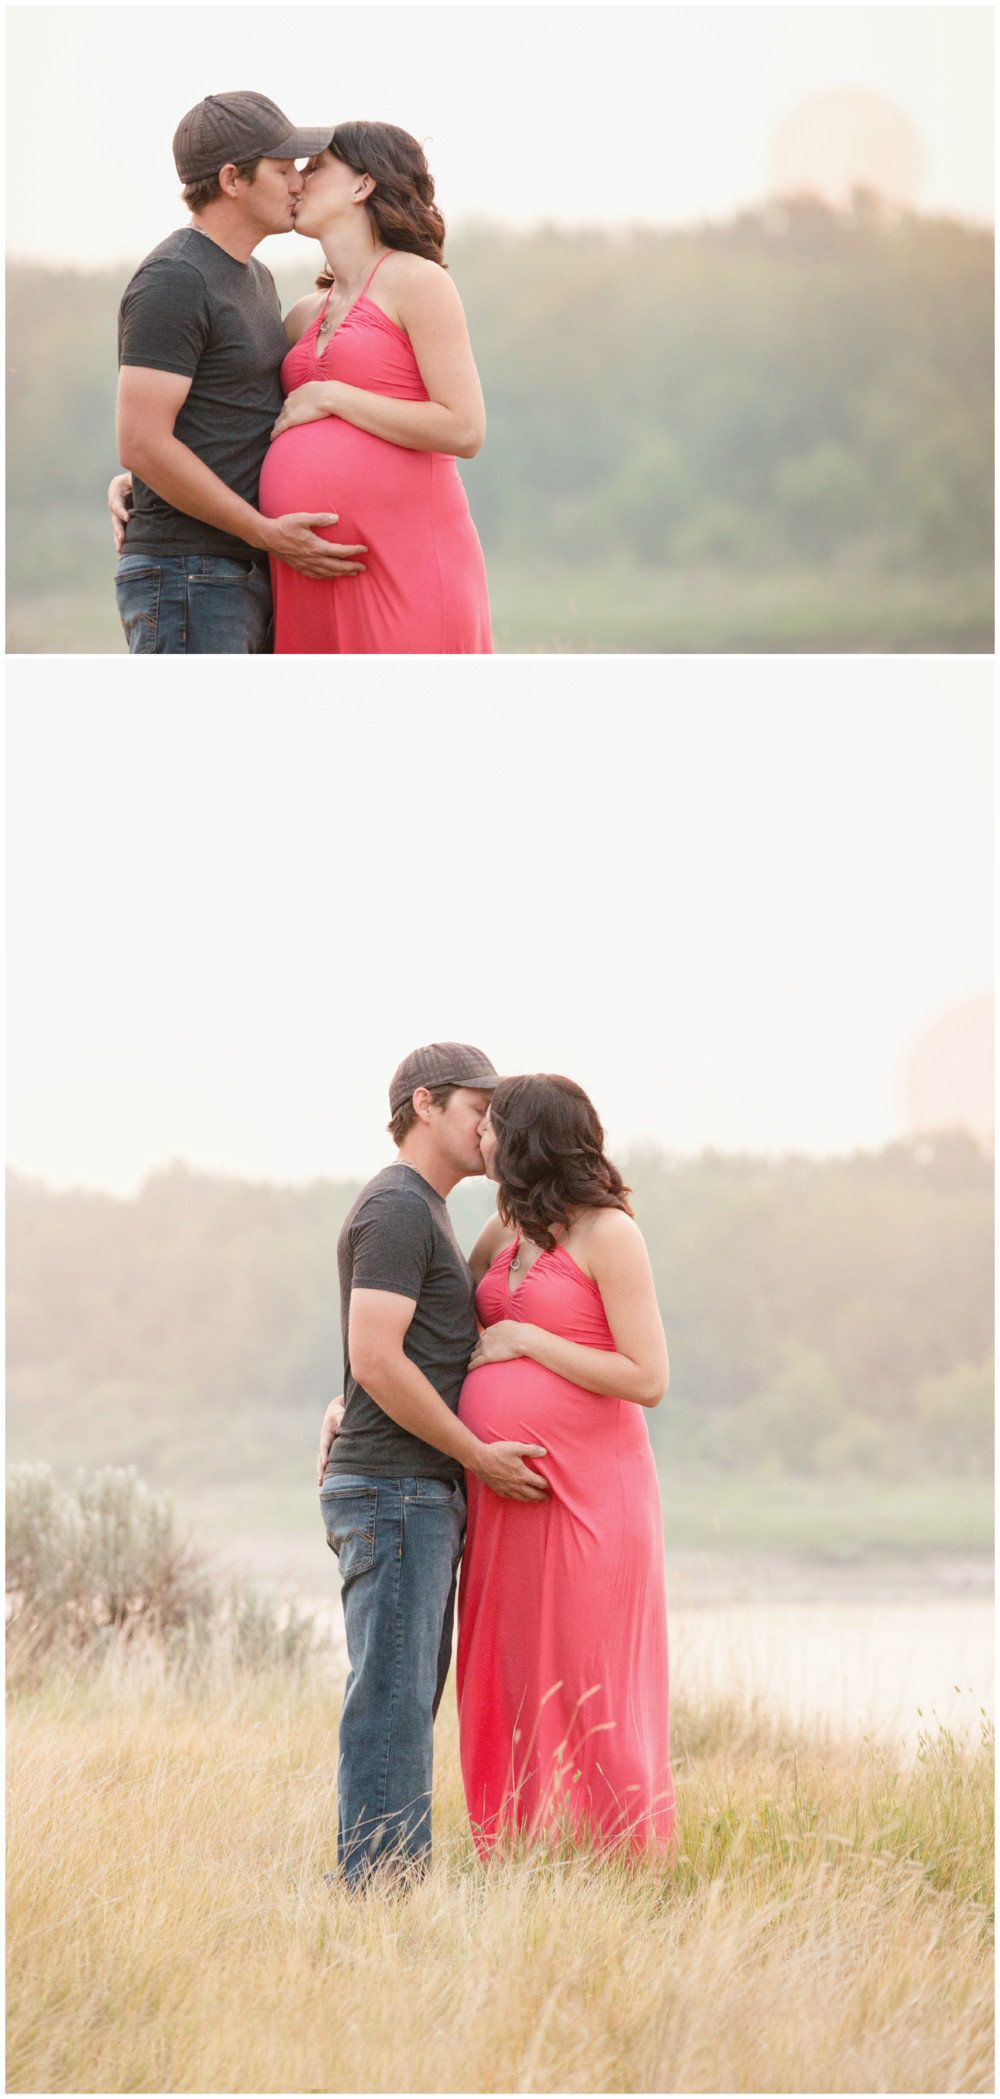 medicine-hat-maternity-photographer_05.png